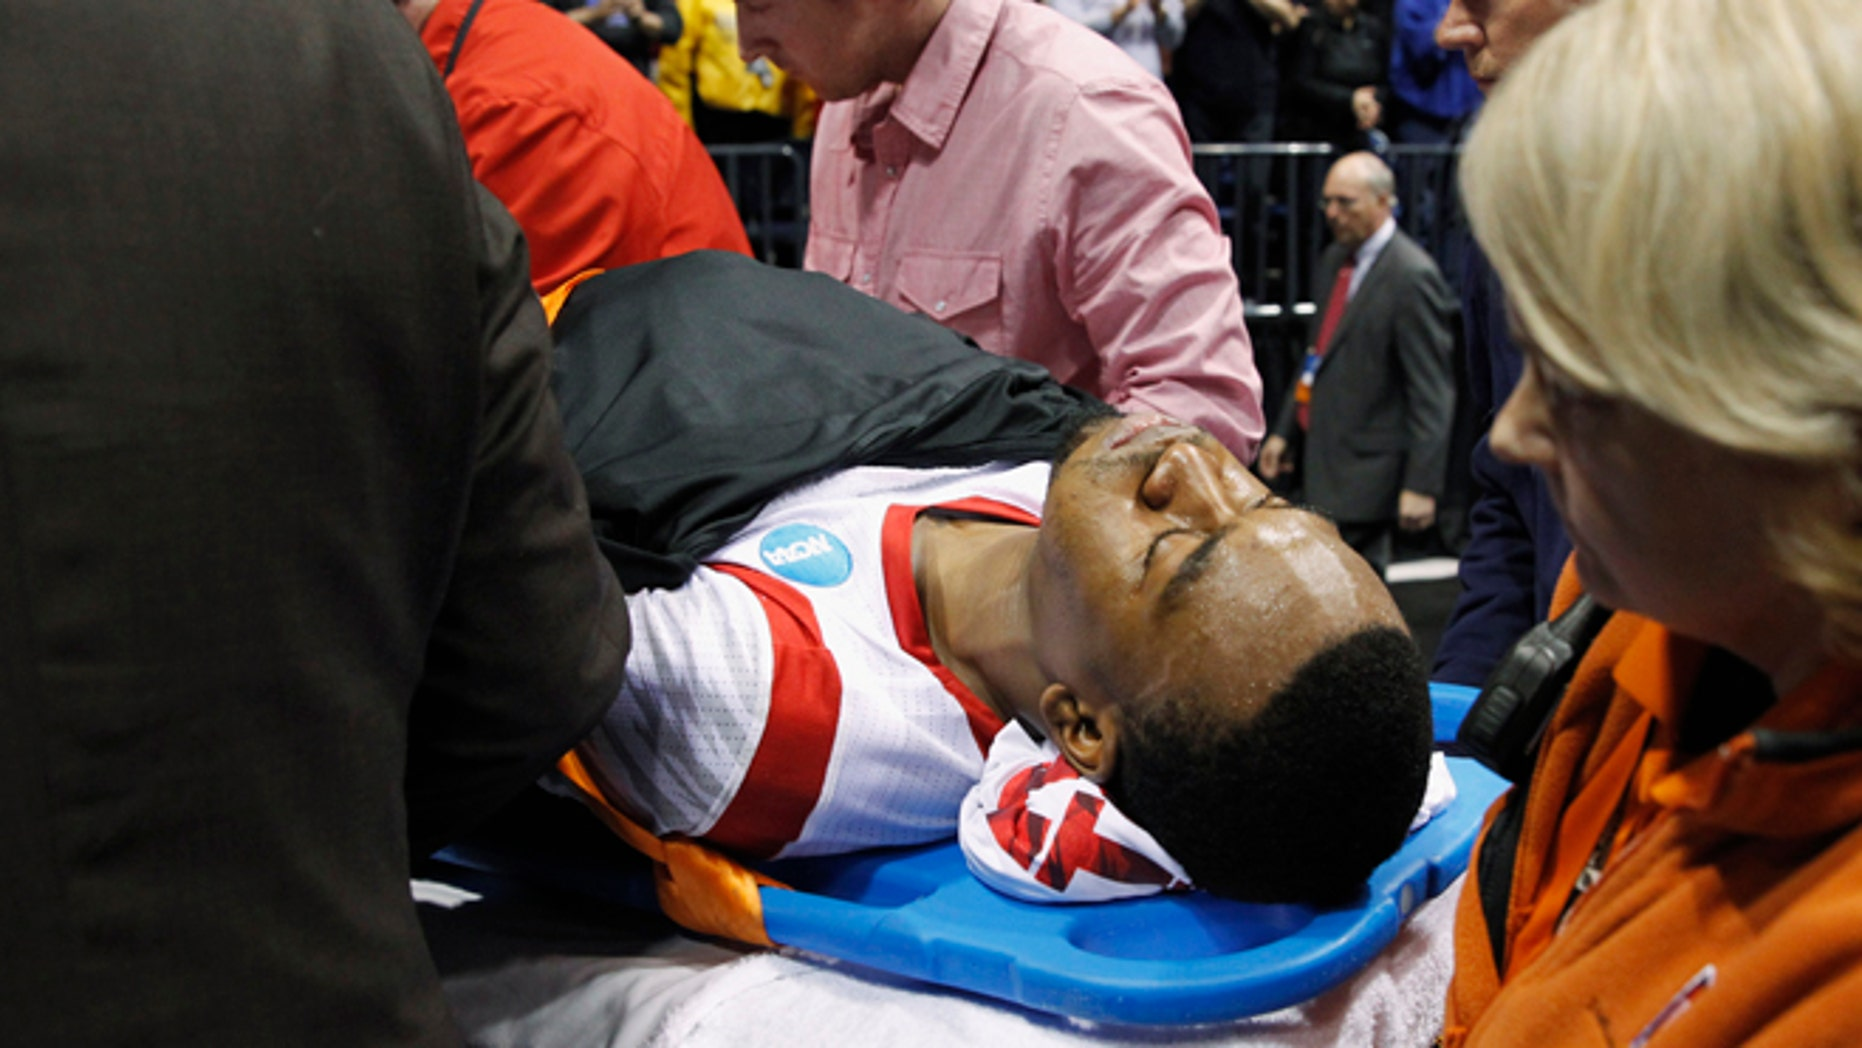 Louisville guard Kevin Ware is taken off of the court  on a stretcher after his injury during the first half of the Midwest Regional final against Duke in the NCAA college basketball tournament Sunday March 31, 2013, in Indianapolis. (AP Photo/Darron Cummings)